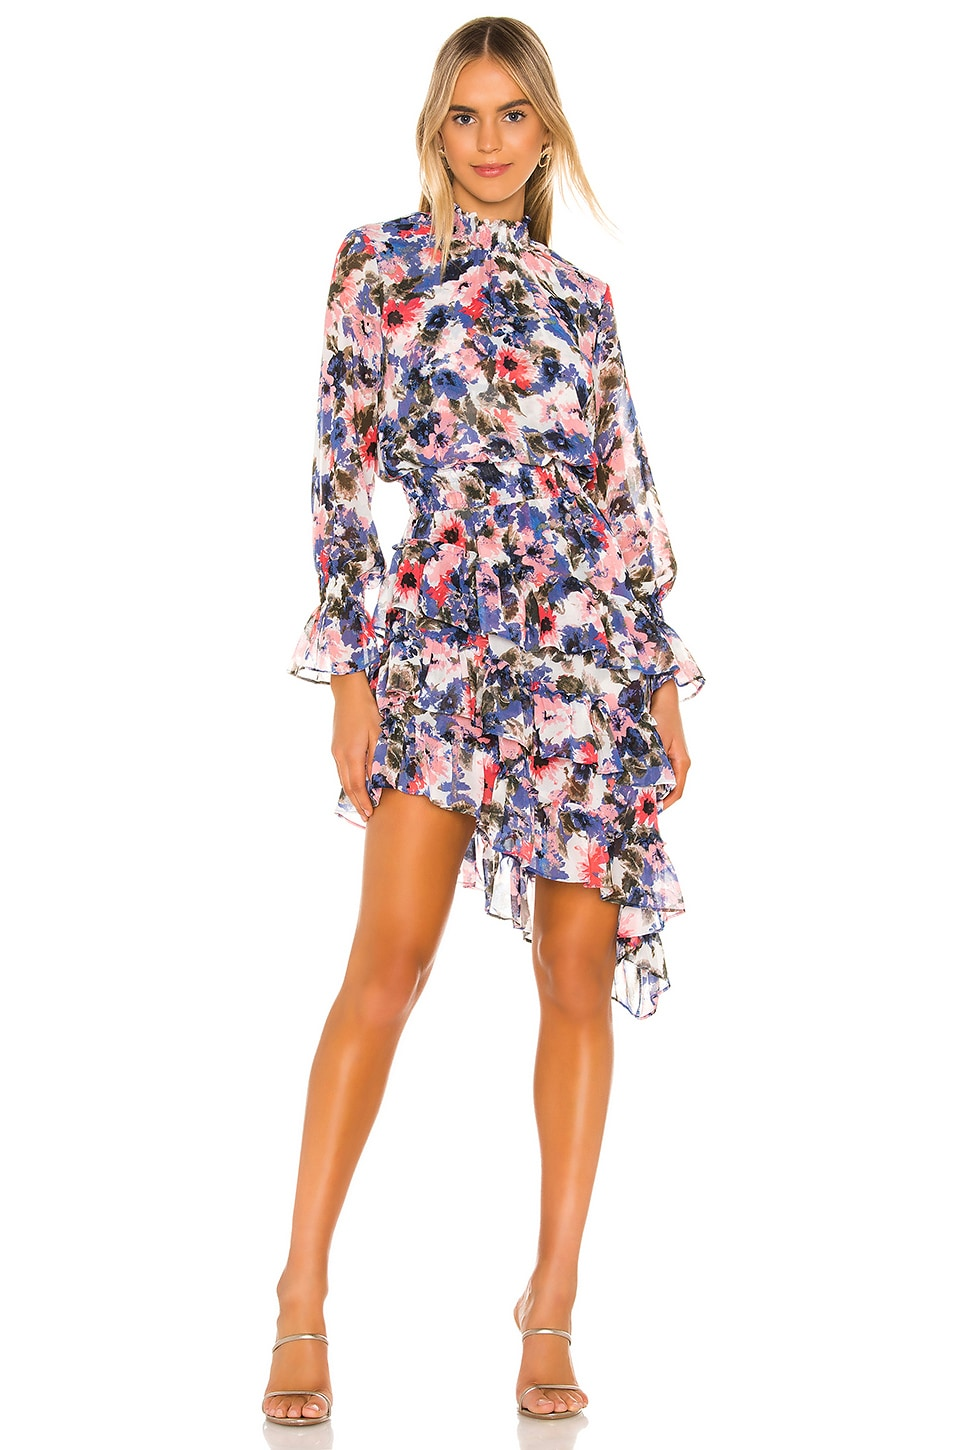 MISA X REVOLVE Los Angeles Savanna Dress                     MISA Los Angeles 8